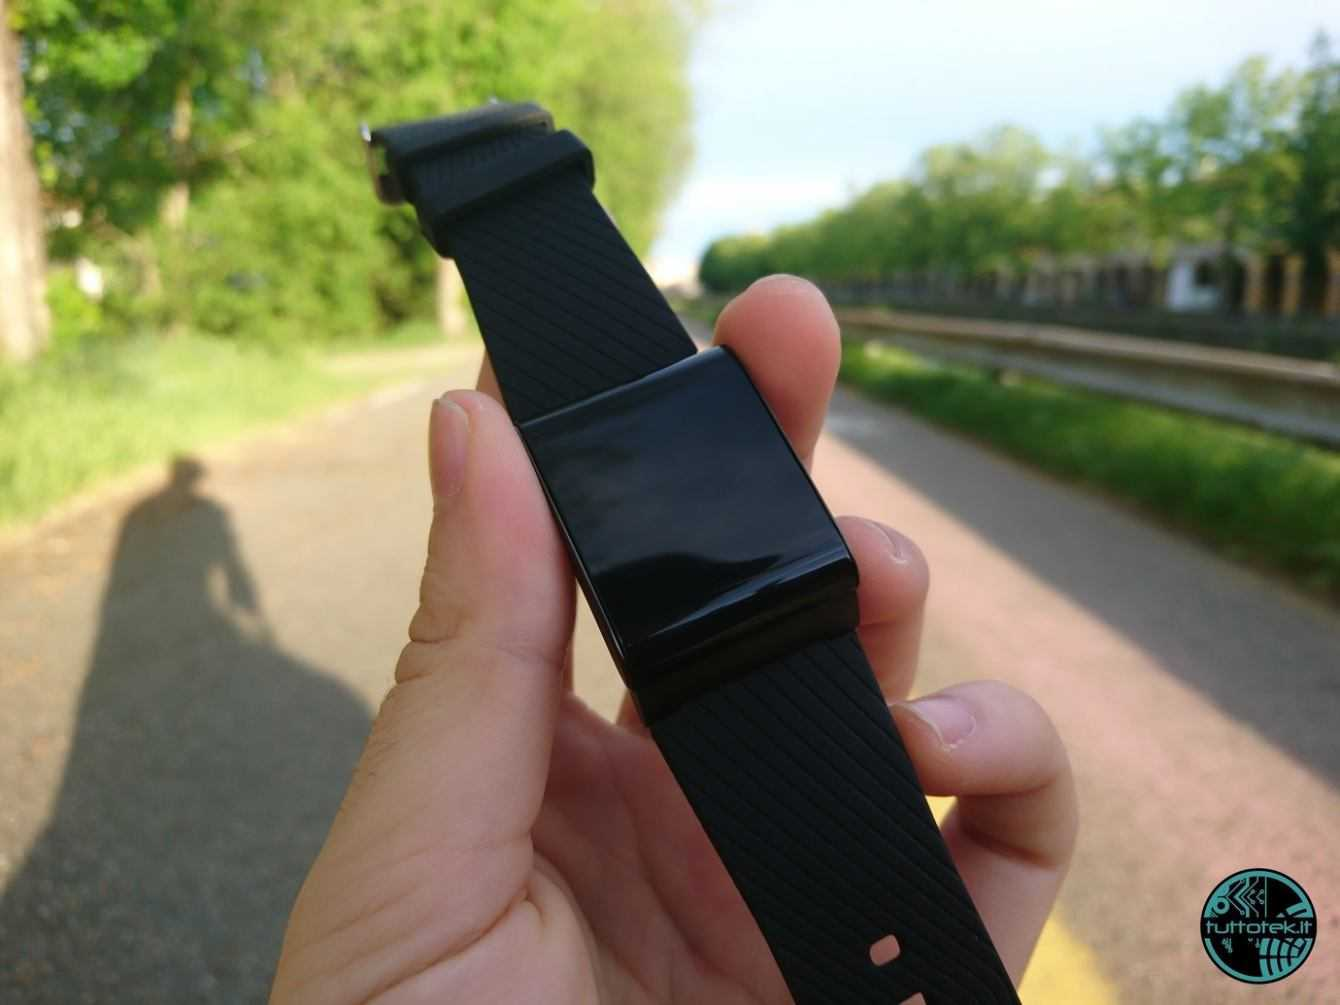 X9 Plus Smartband Review: Saving is not always good